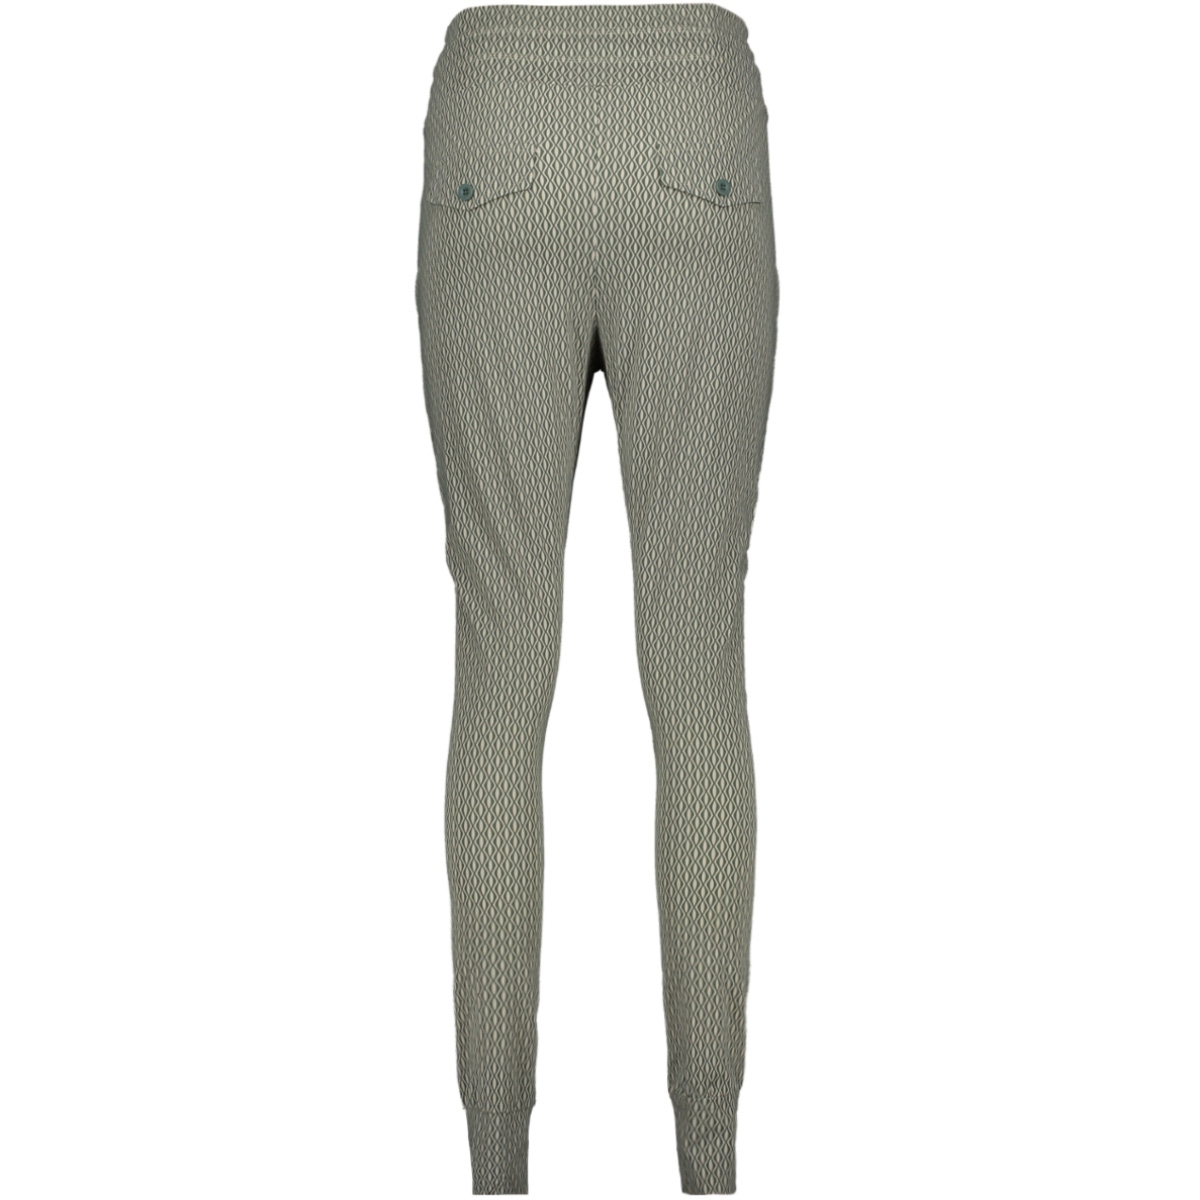 pamela travel pant 202 zoso broek greenstone/sand